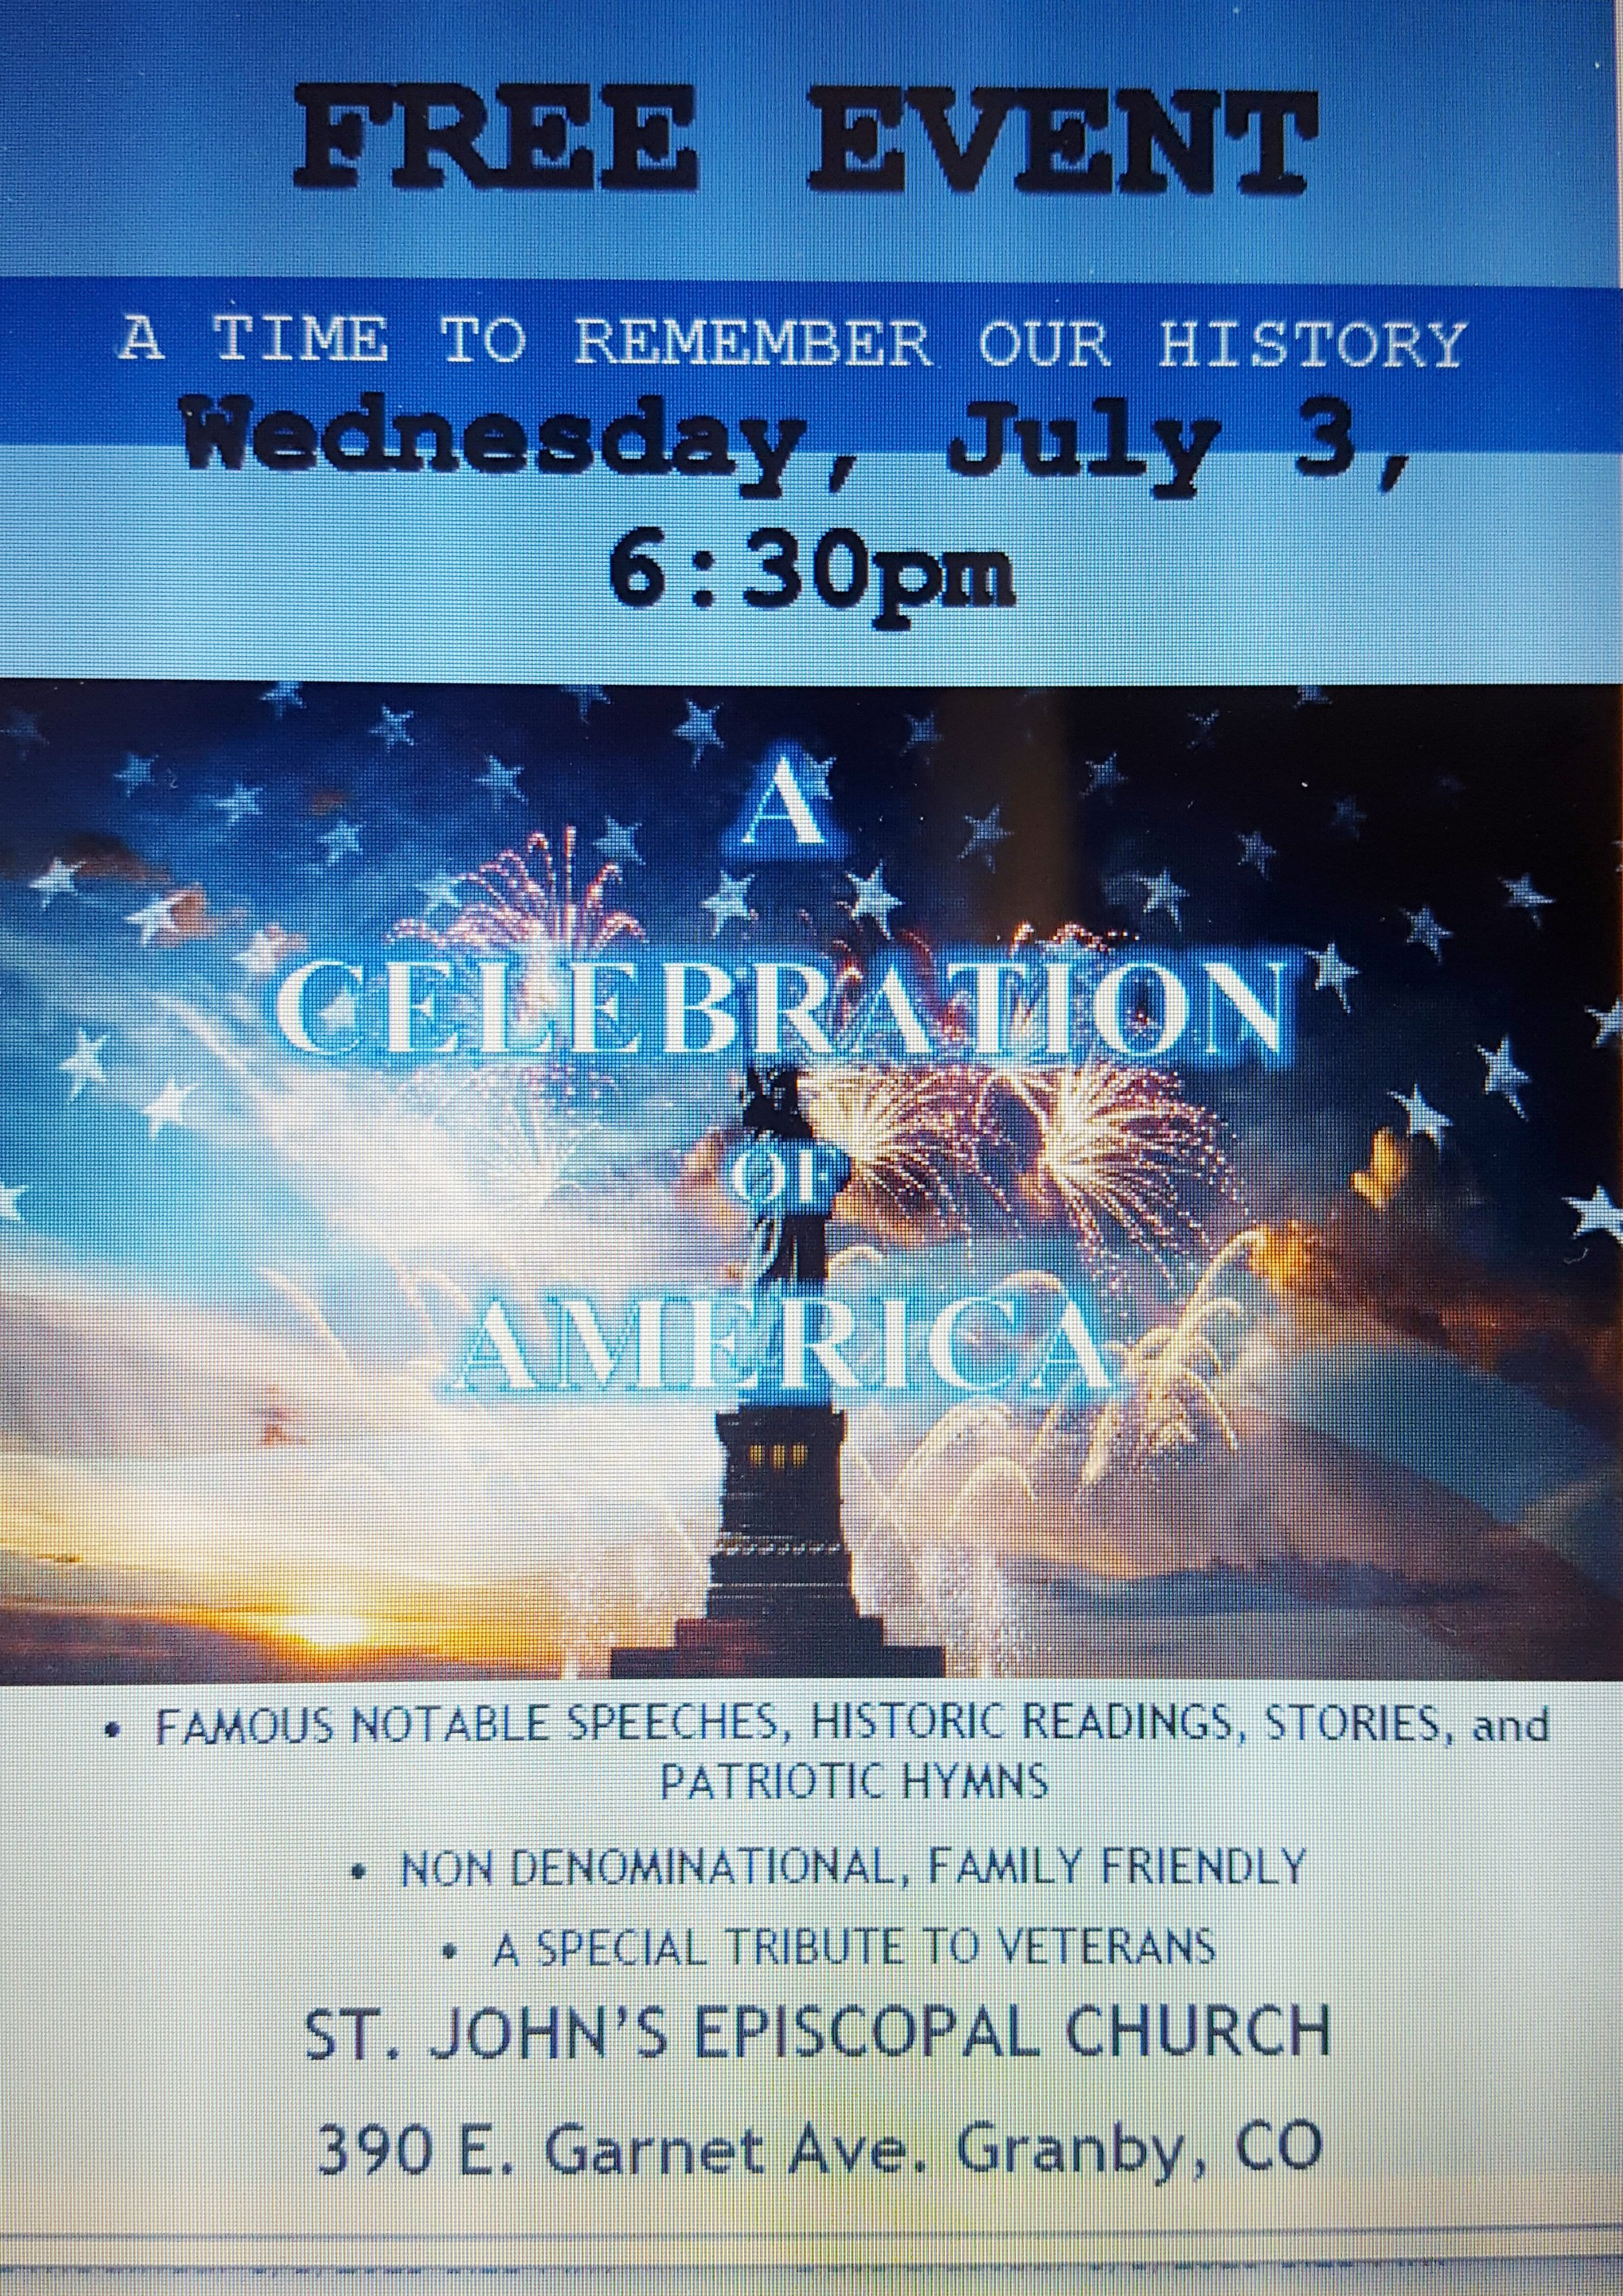 Celebration of America - This event is co-sponsored by the Presbyterian, Luhheran and episcopal communities for all the people of Grand County.  A non-denominational service will kick-off the evening, with a tribute to veterans, food, games, stories and historical readings to fill the evening.  Truly an event for all the family, beginning at 6:30pm on July 3rd, and held at St. John the Baptist Episcopal Church in Granby.  We look forward to seeing our friends an neighbors joining us in the celebration of our nation.